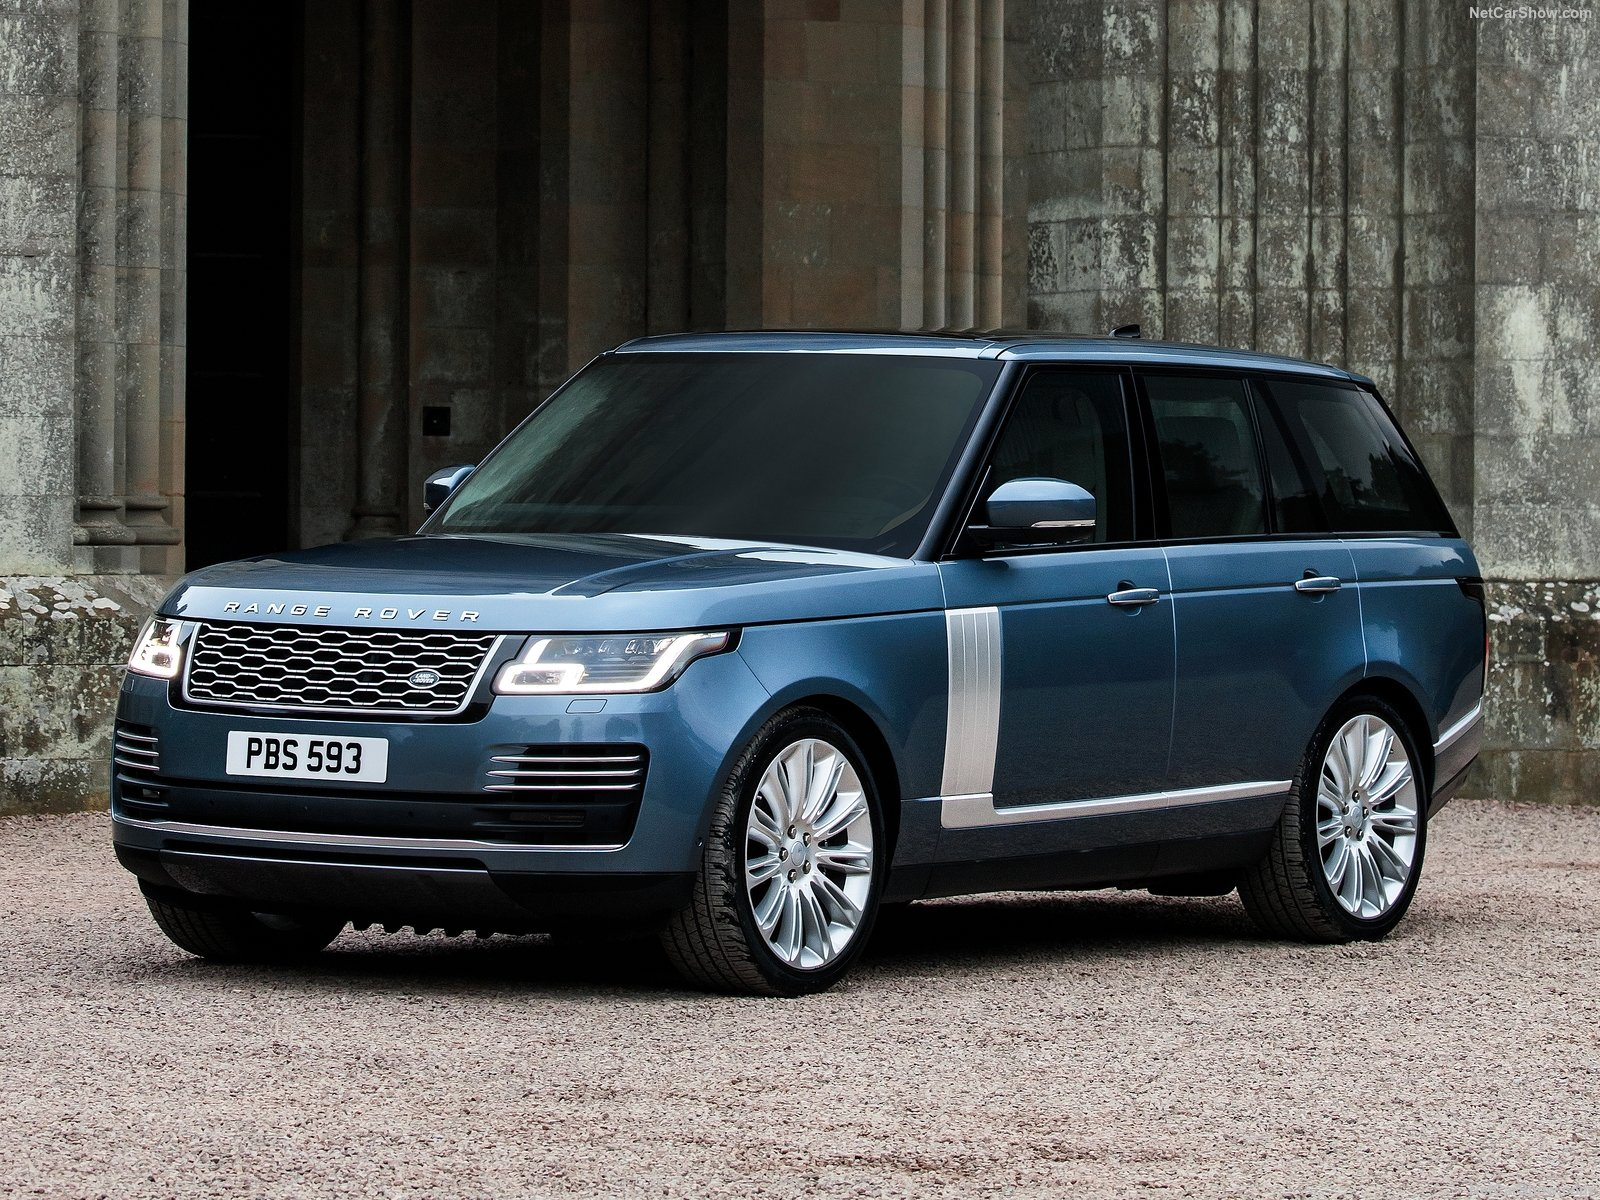 Land Rover Range Rover photos Gallery with 203 pics